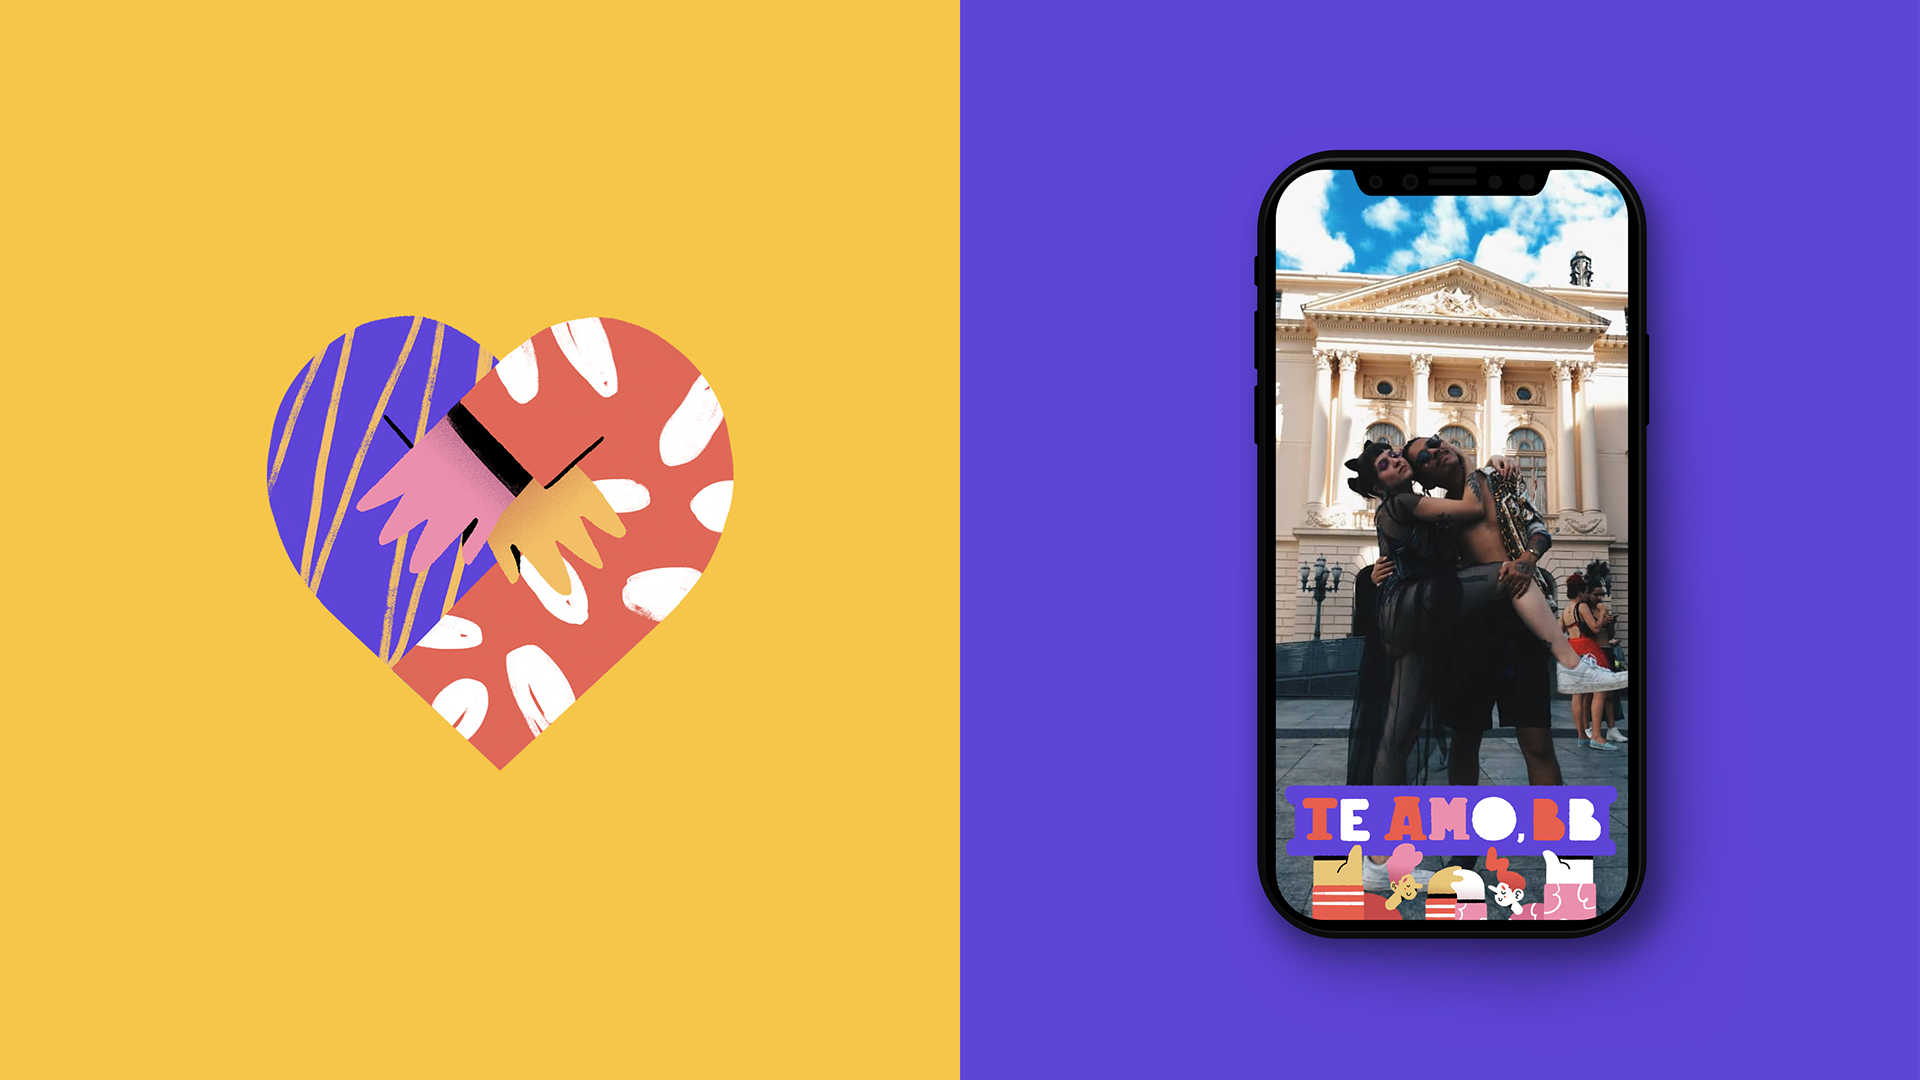 Dia dos Namorados Illustrations - Frames & Stickers for Facebook Stories